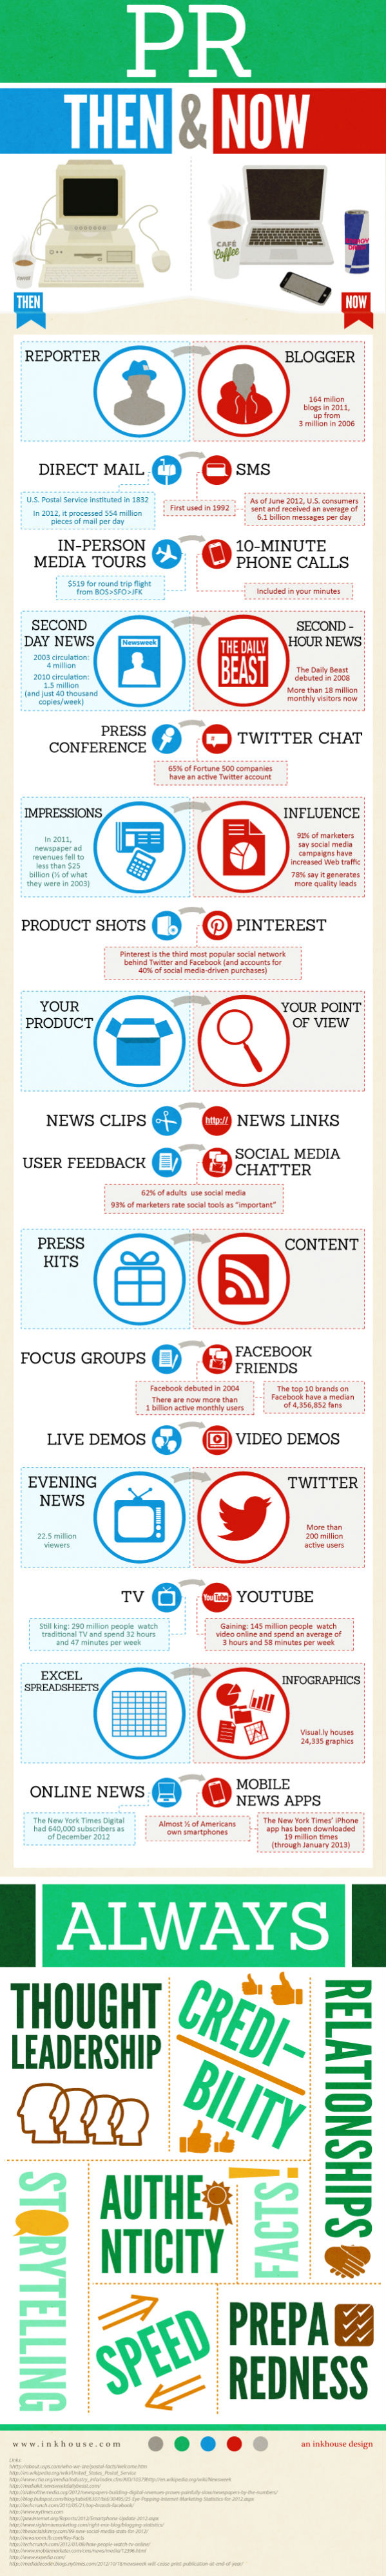 PR Then and Now [Infographic]